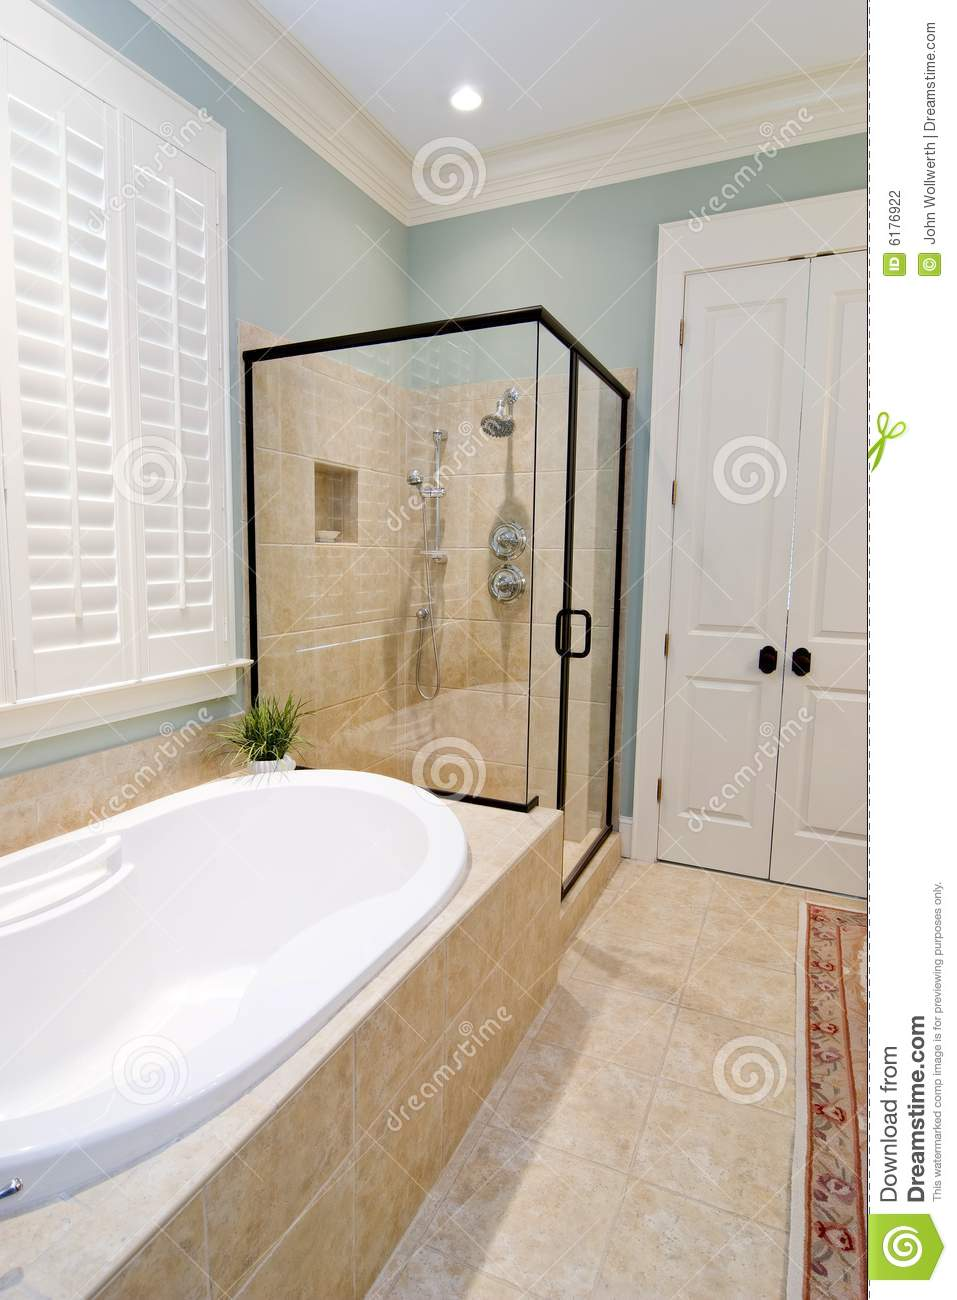 Cuartos De Baño Con Tina:Bathroom Tub and Shower with Glass